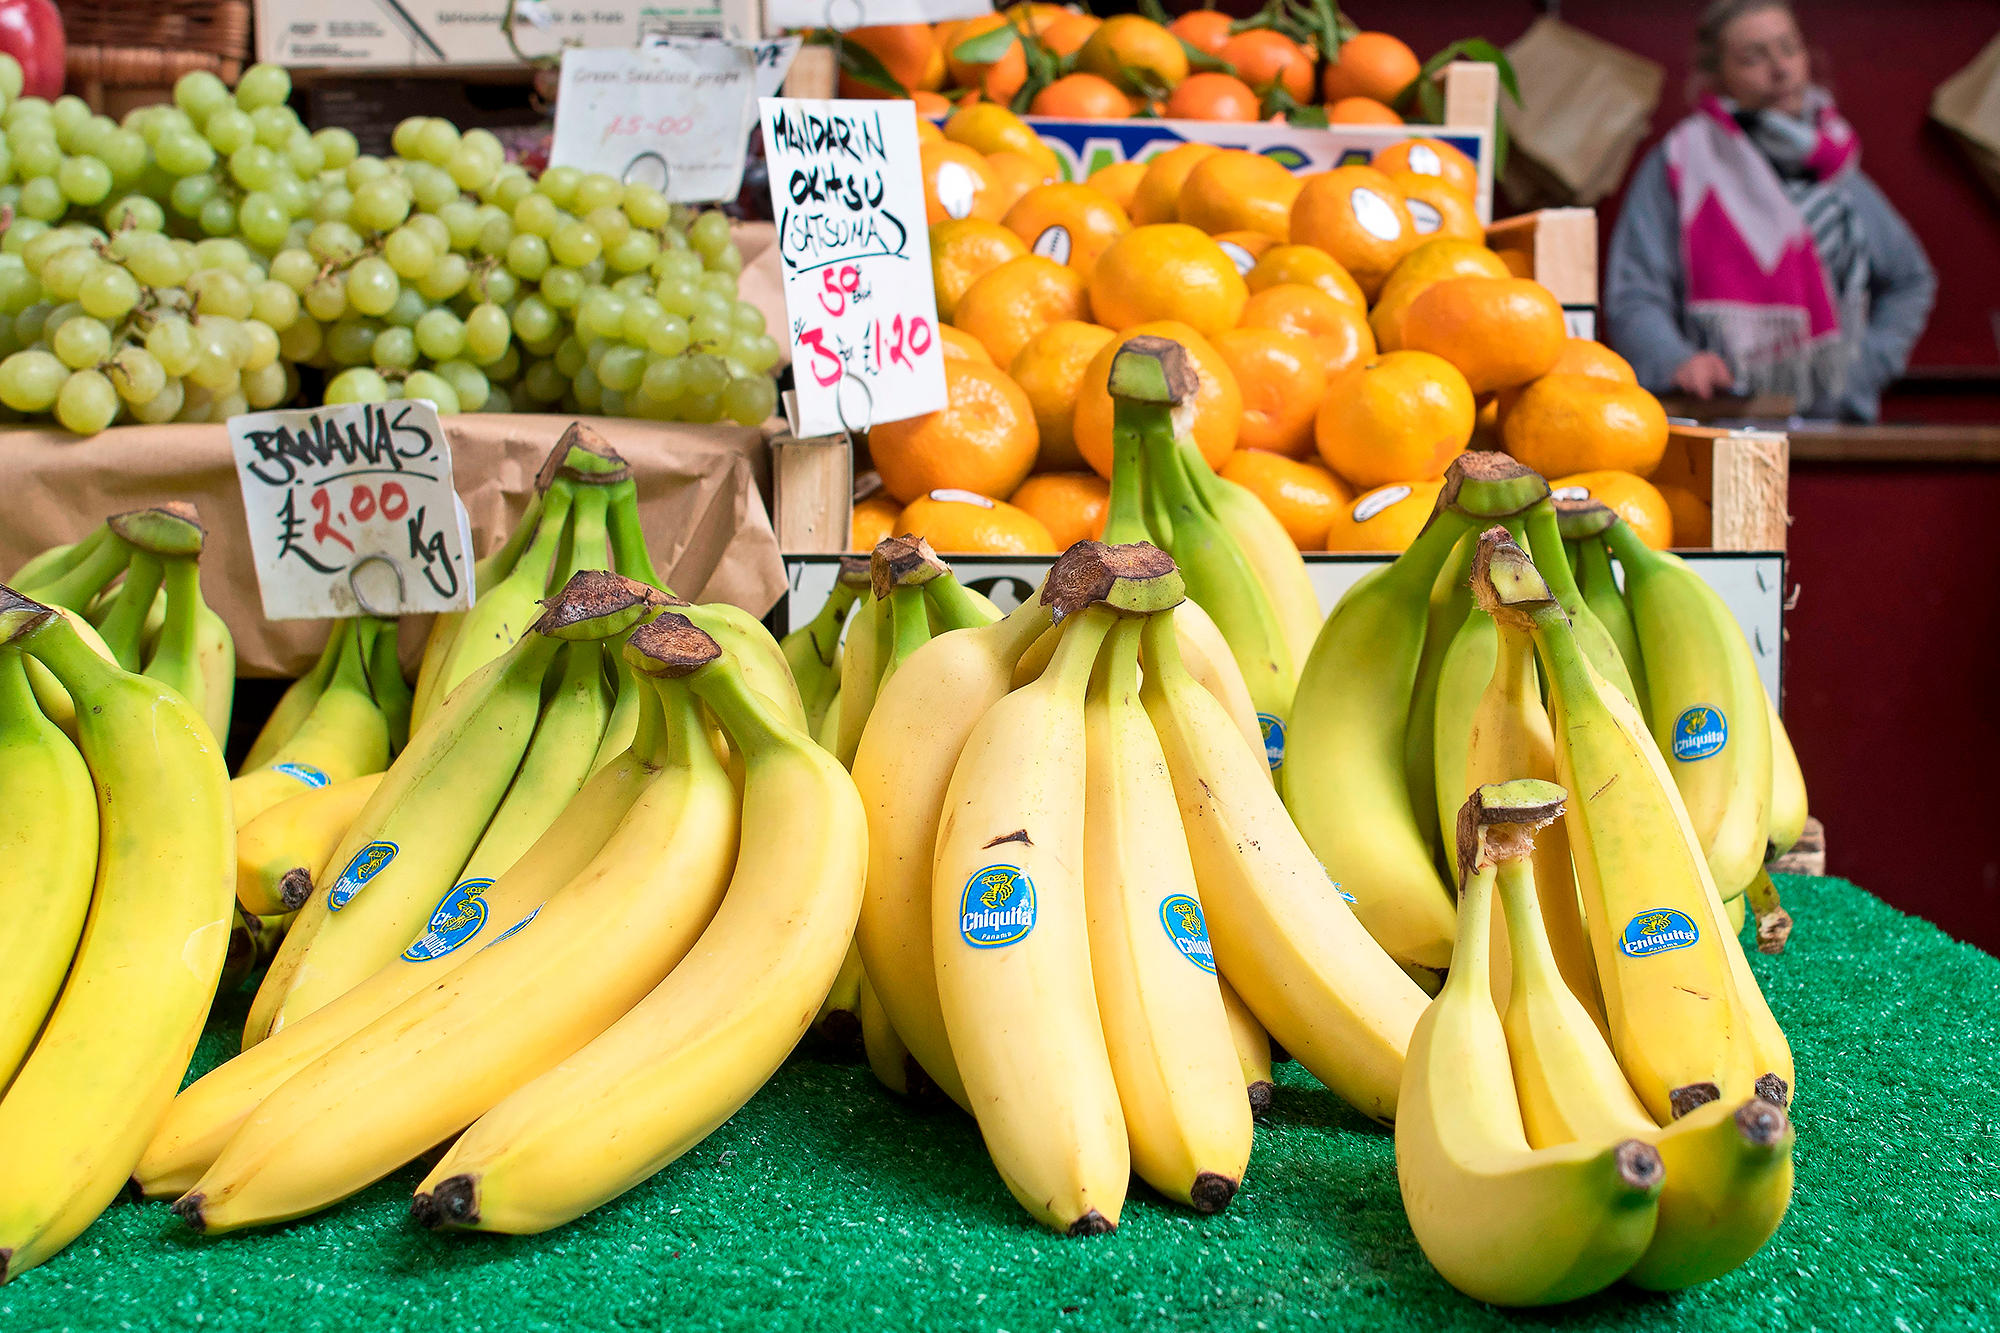 Labels show the price in pounds sterling of fruit and vegetables